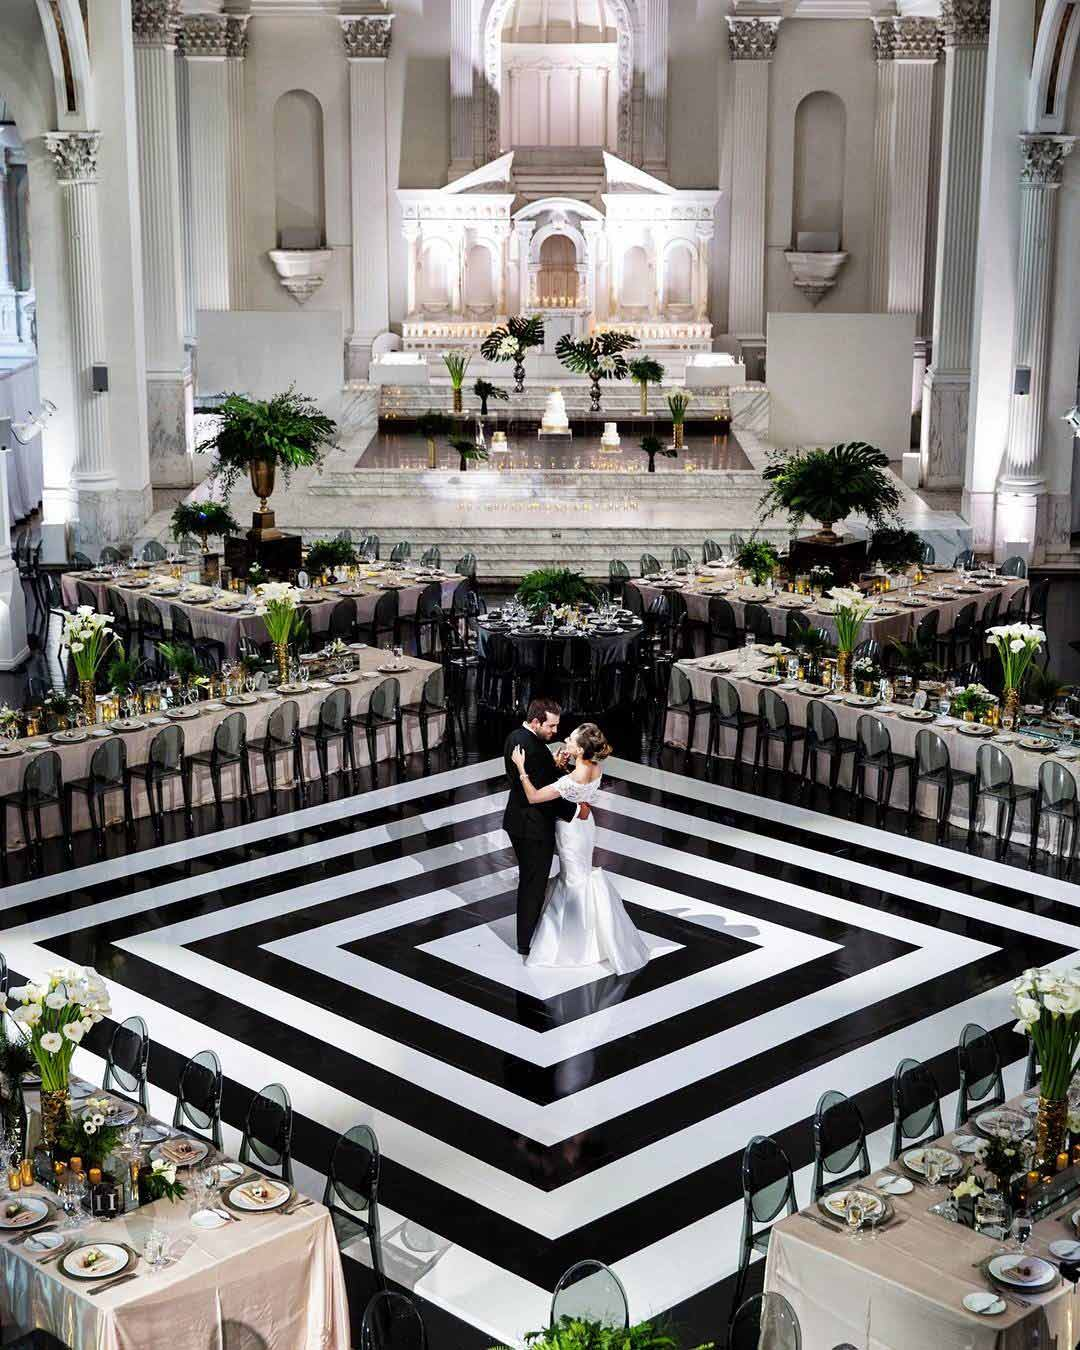 wedding colors black white bride groom venue